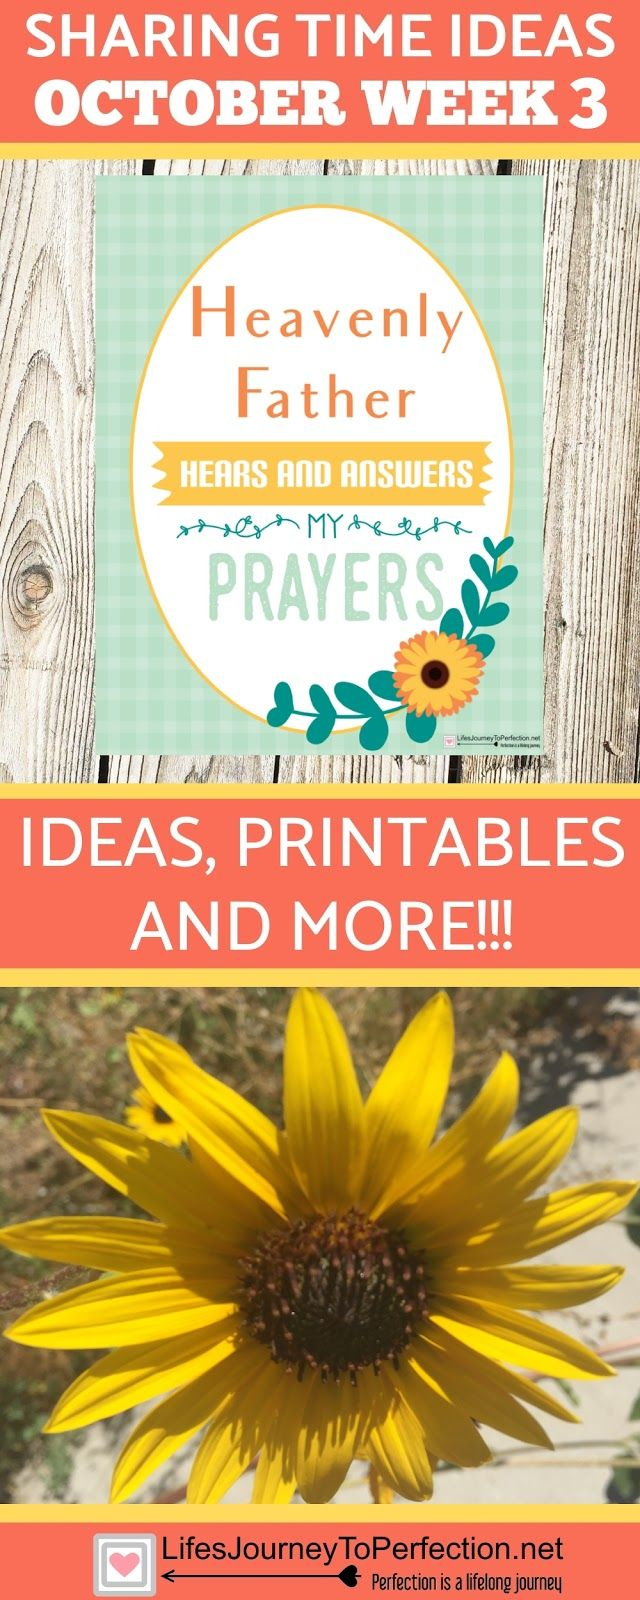 Sharing Time ideas October week 3 or 4. LDS Primary: Heavenly Father hears and answers my prayers